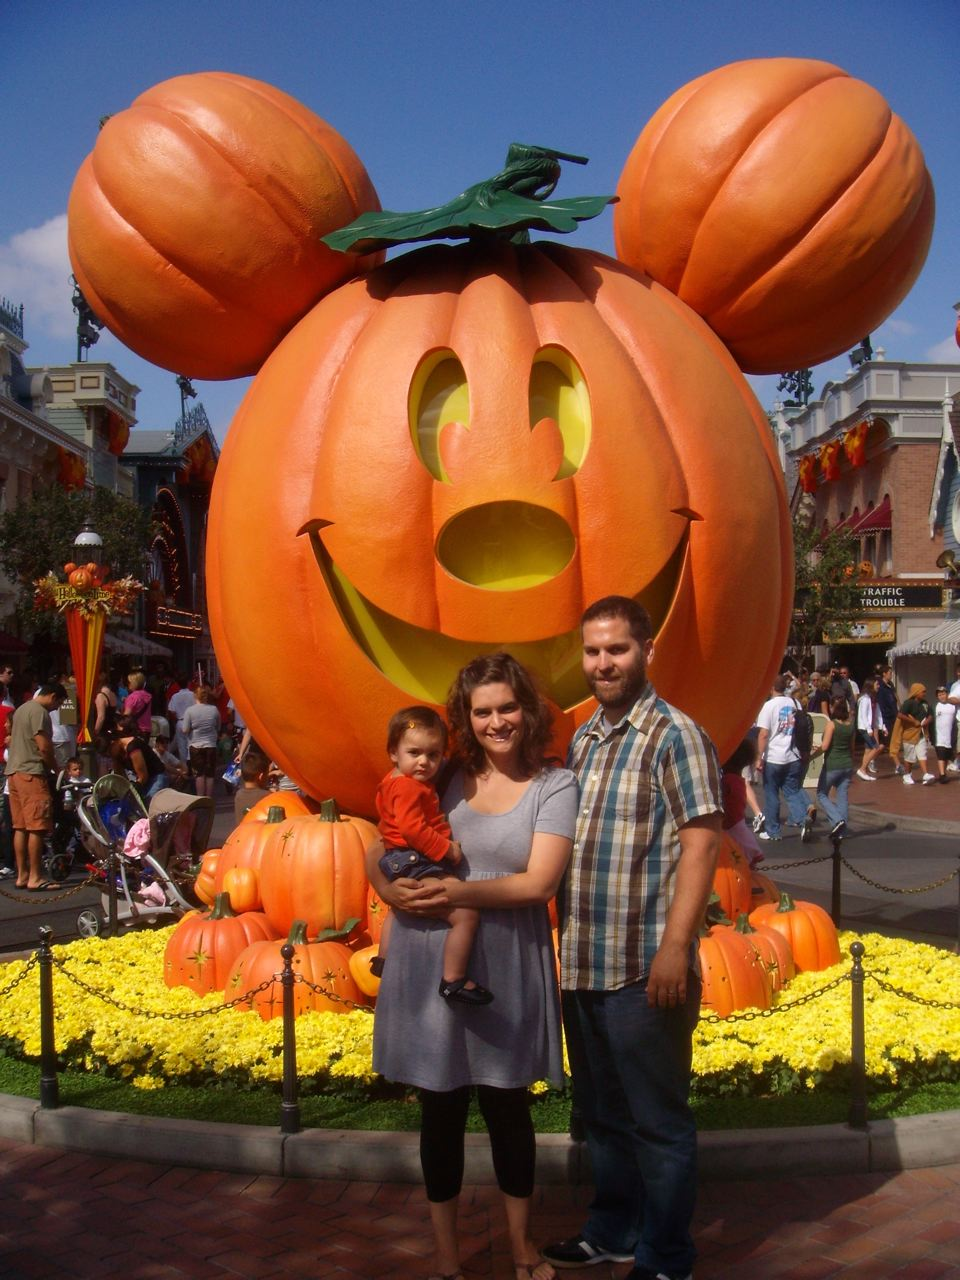 Disneyland or Disney World? That is what everyone kept asking me. You'll have to read more to find out.